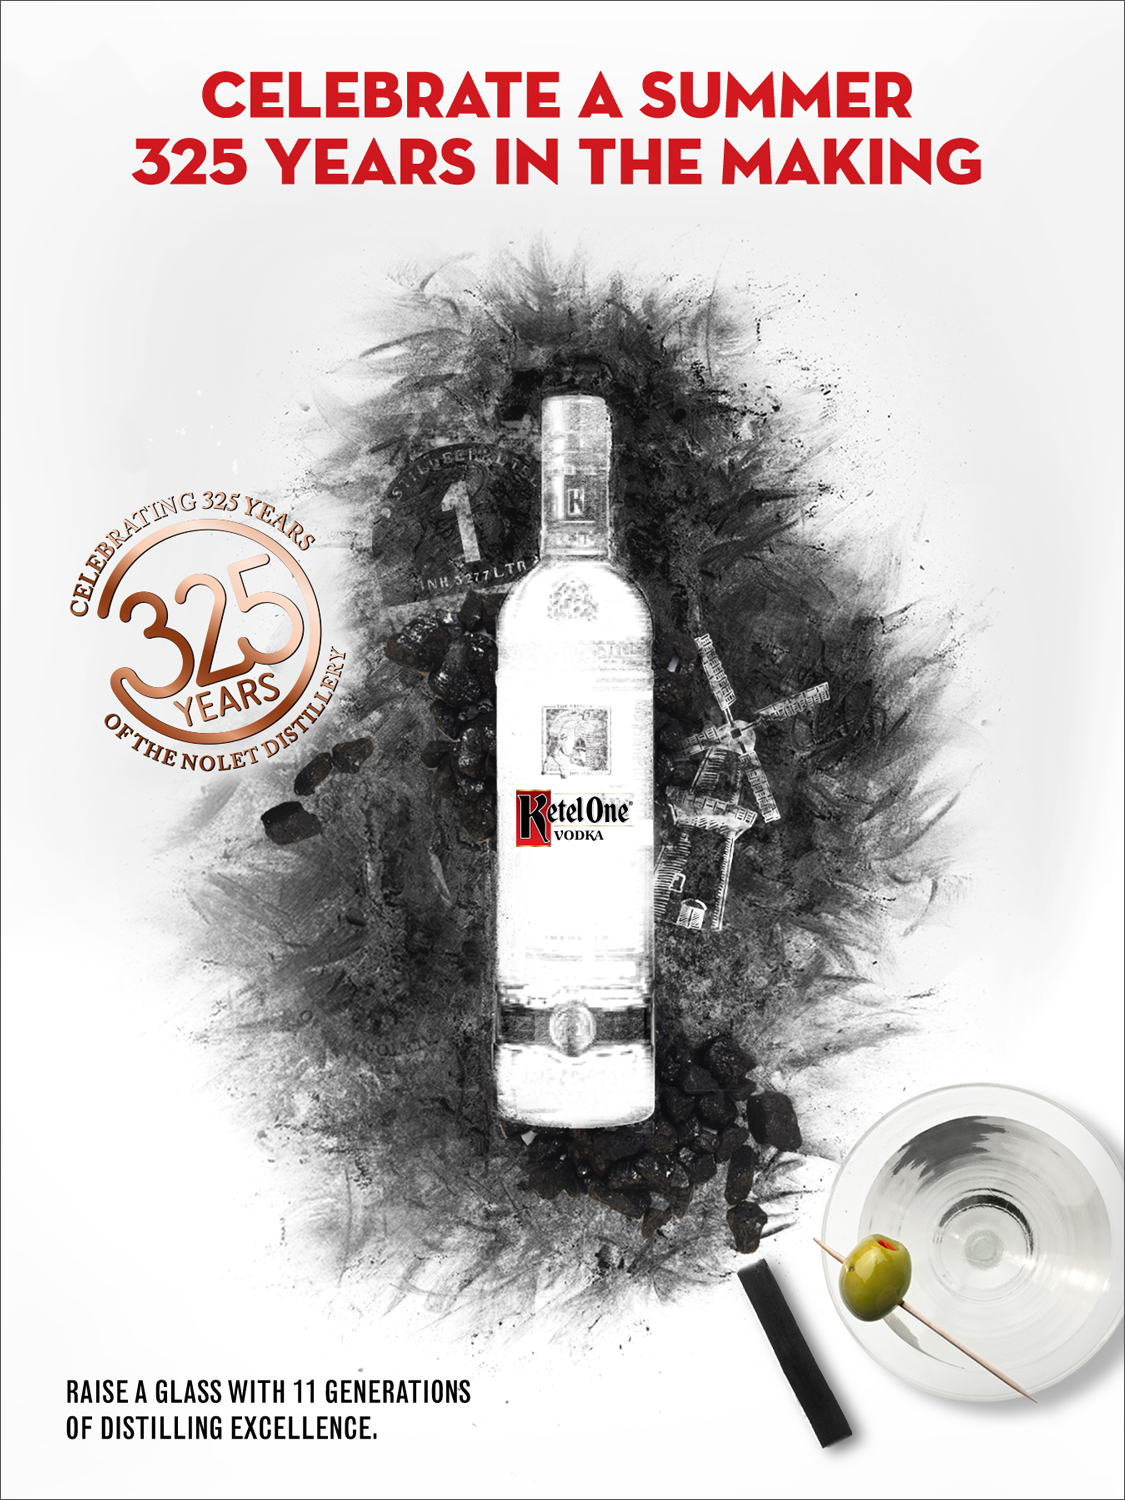 Conceptual hero creative for the 325th year Anniversary, celebrates specific elements of the brand through the use of charcoal (which is essential in the making of Ketel One Vodka).